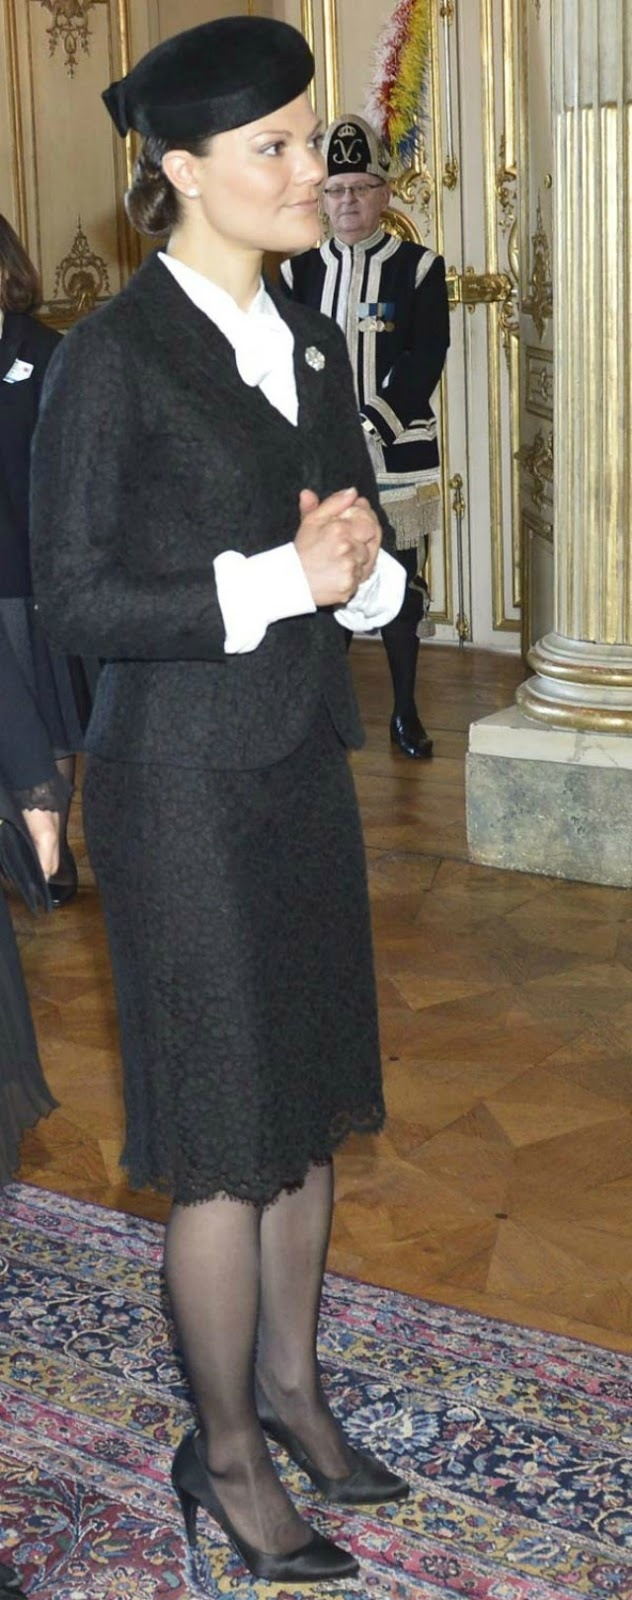 MYROYALS  FASHİON: Crown Princess Victoria, in mourning for Princess Lilian, welcomes a state visit from Turkey to Sweden